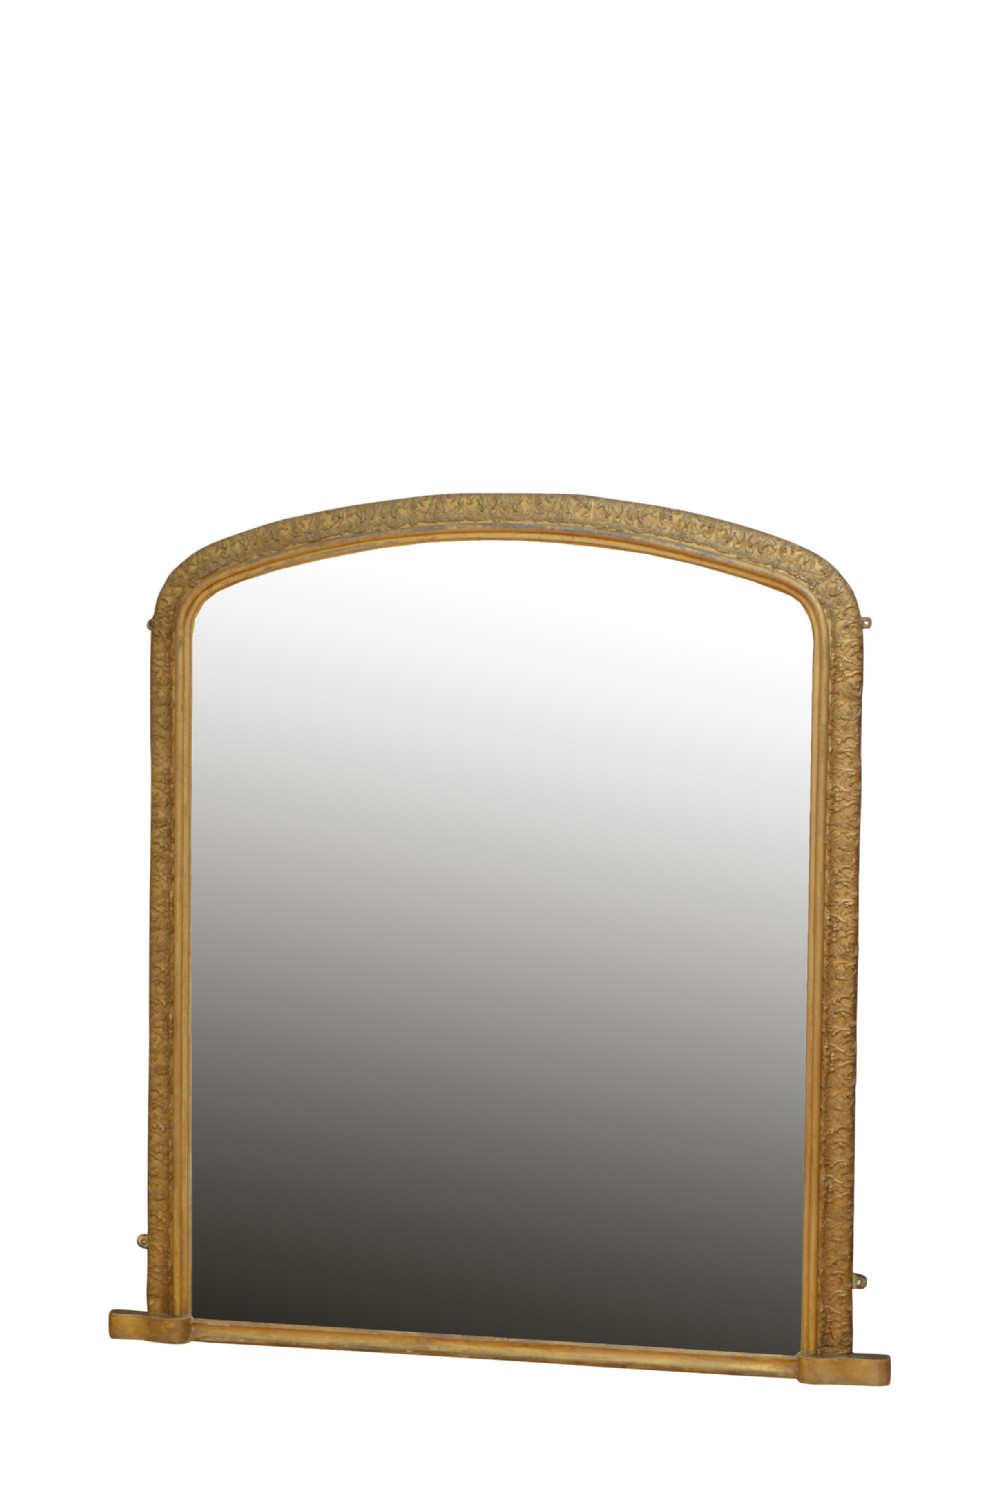 superb early victorian giltwood wall mirror